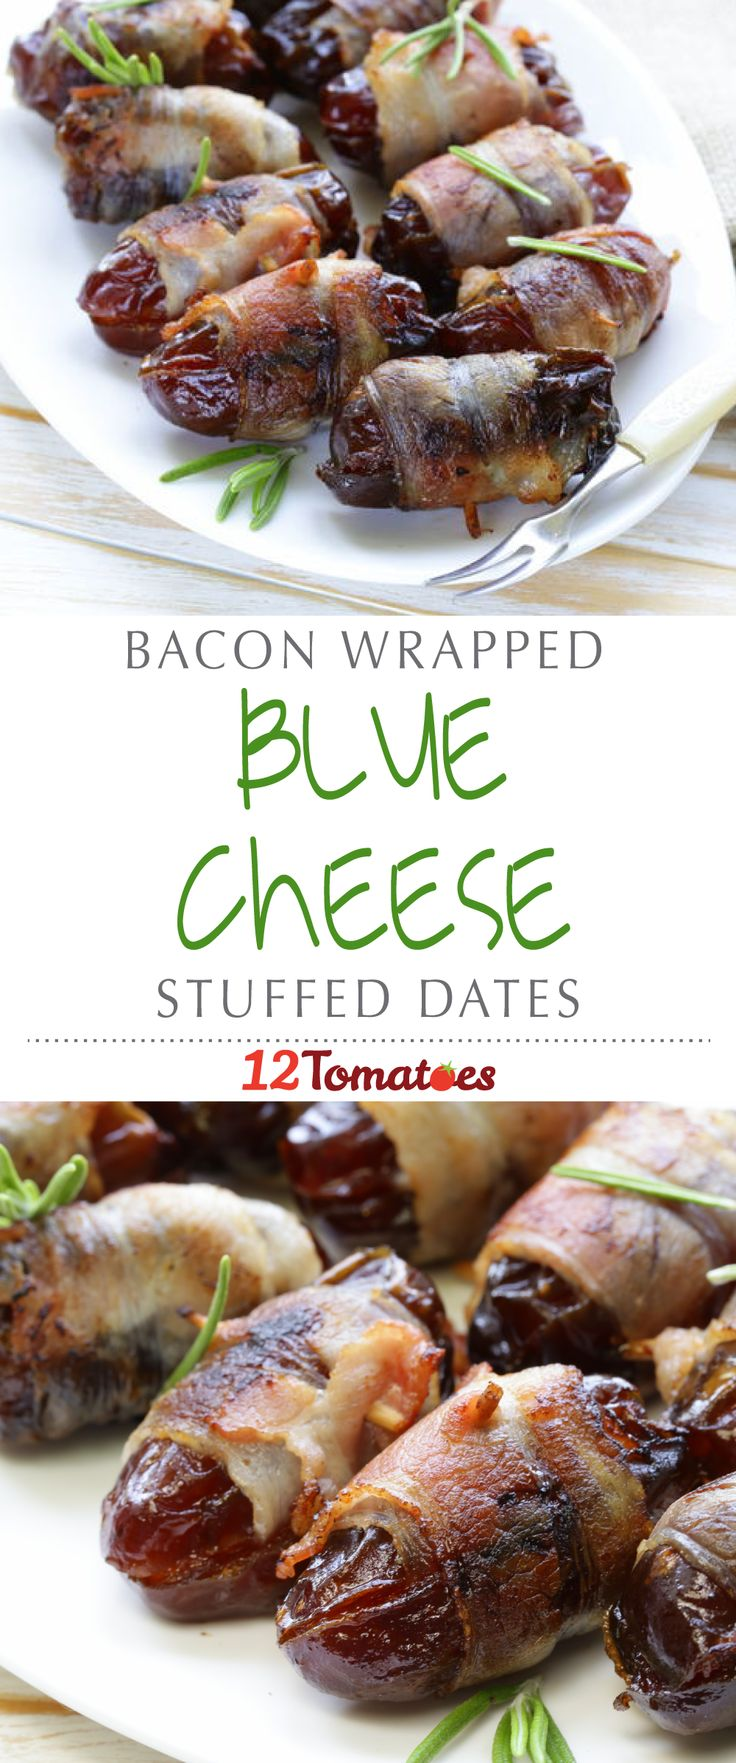 Bacon-Wrapped Blue Cheese Stuffed Dates | If blue cheese isn't for you, go ahead and try these bacon-wrapped snacks without it– they're still delicious.